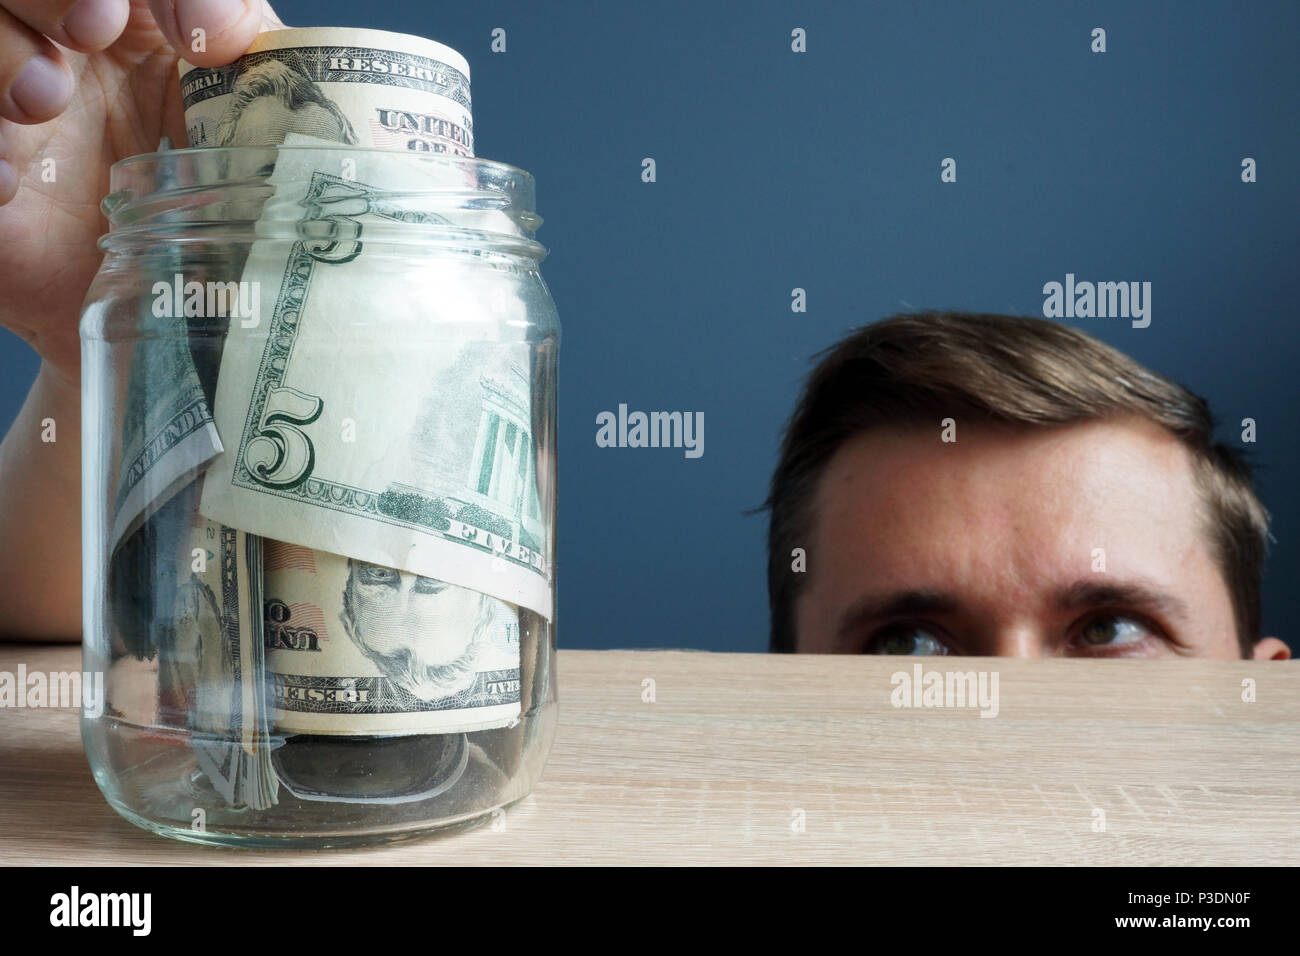 Man takes out the banknote from the jar. Financial infidelity concept. - Stock Image